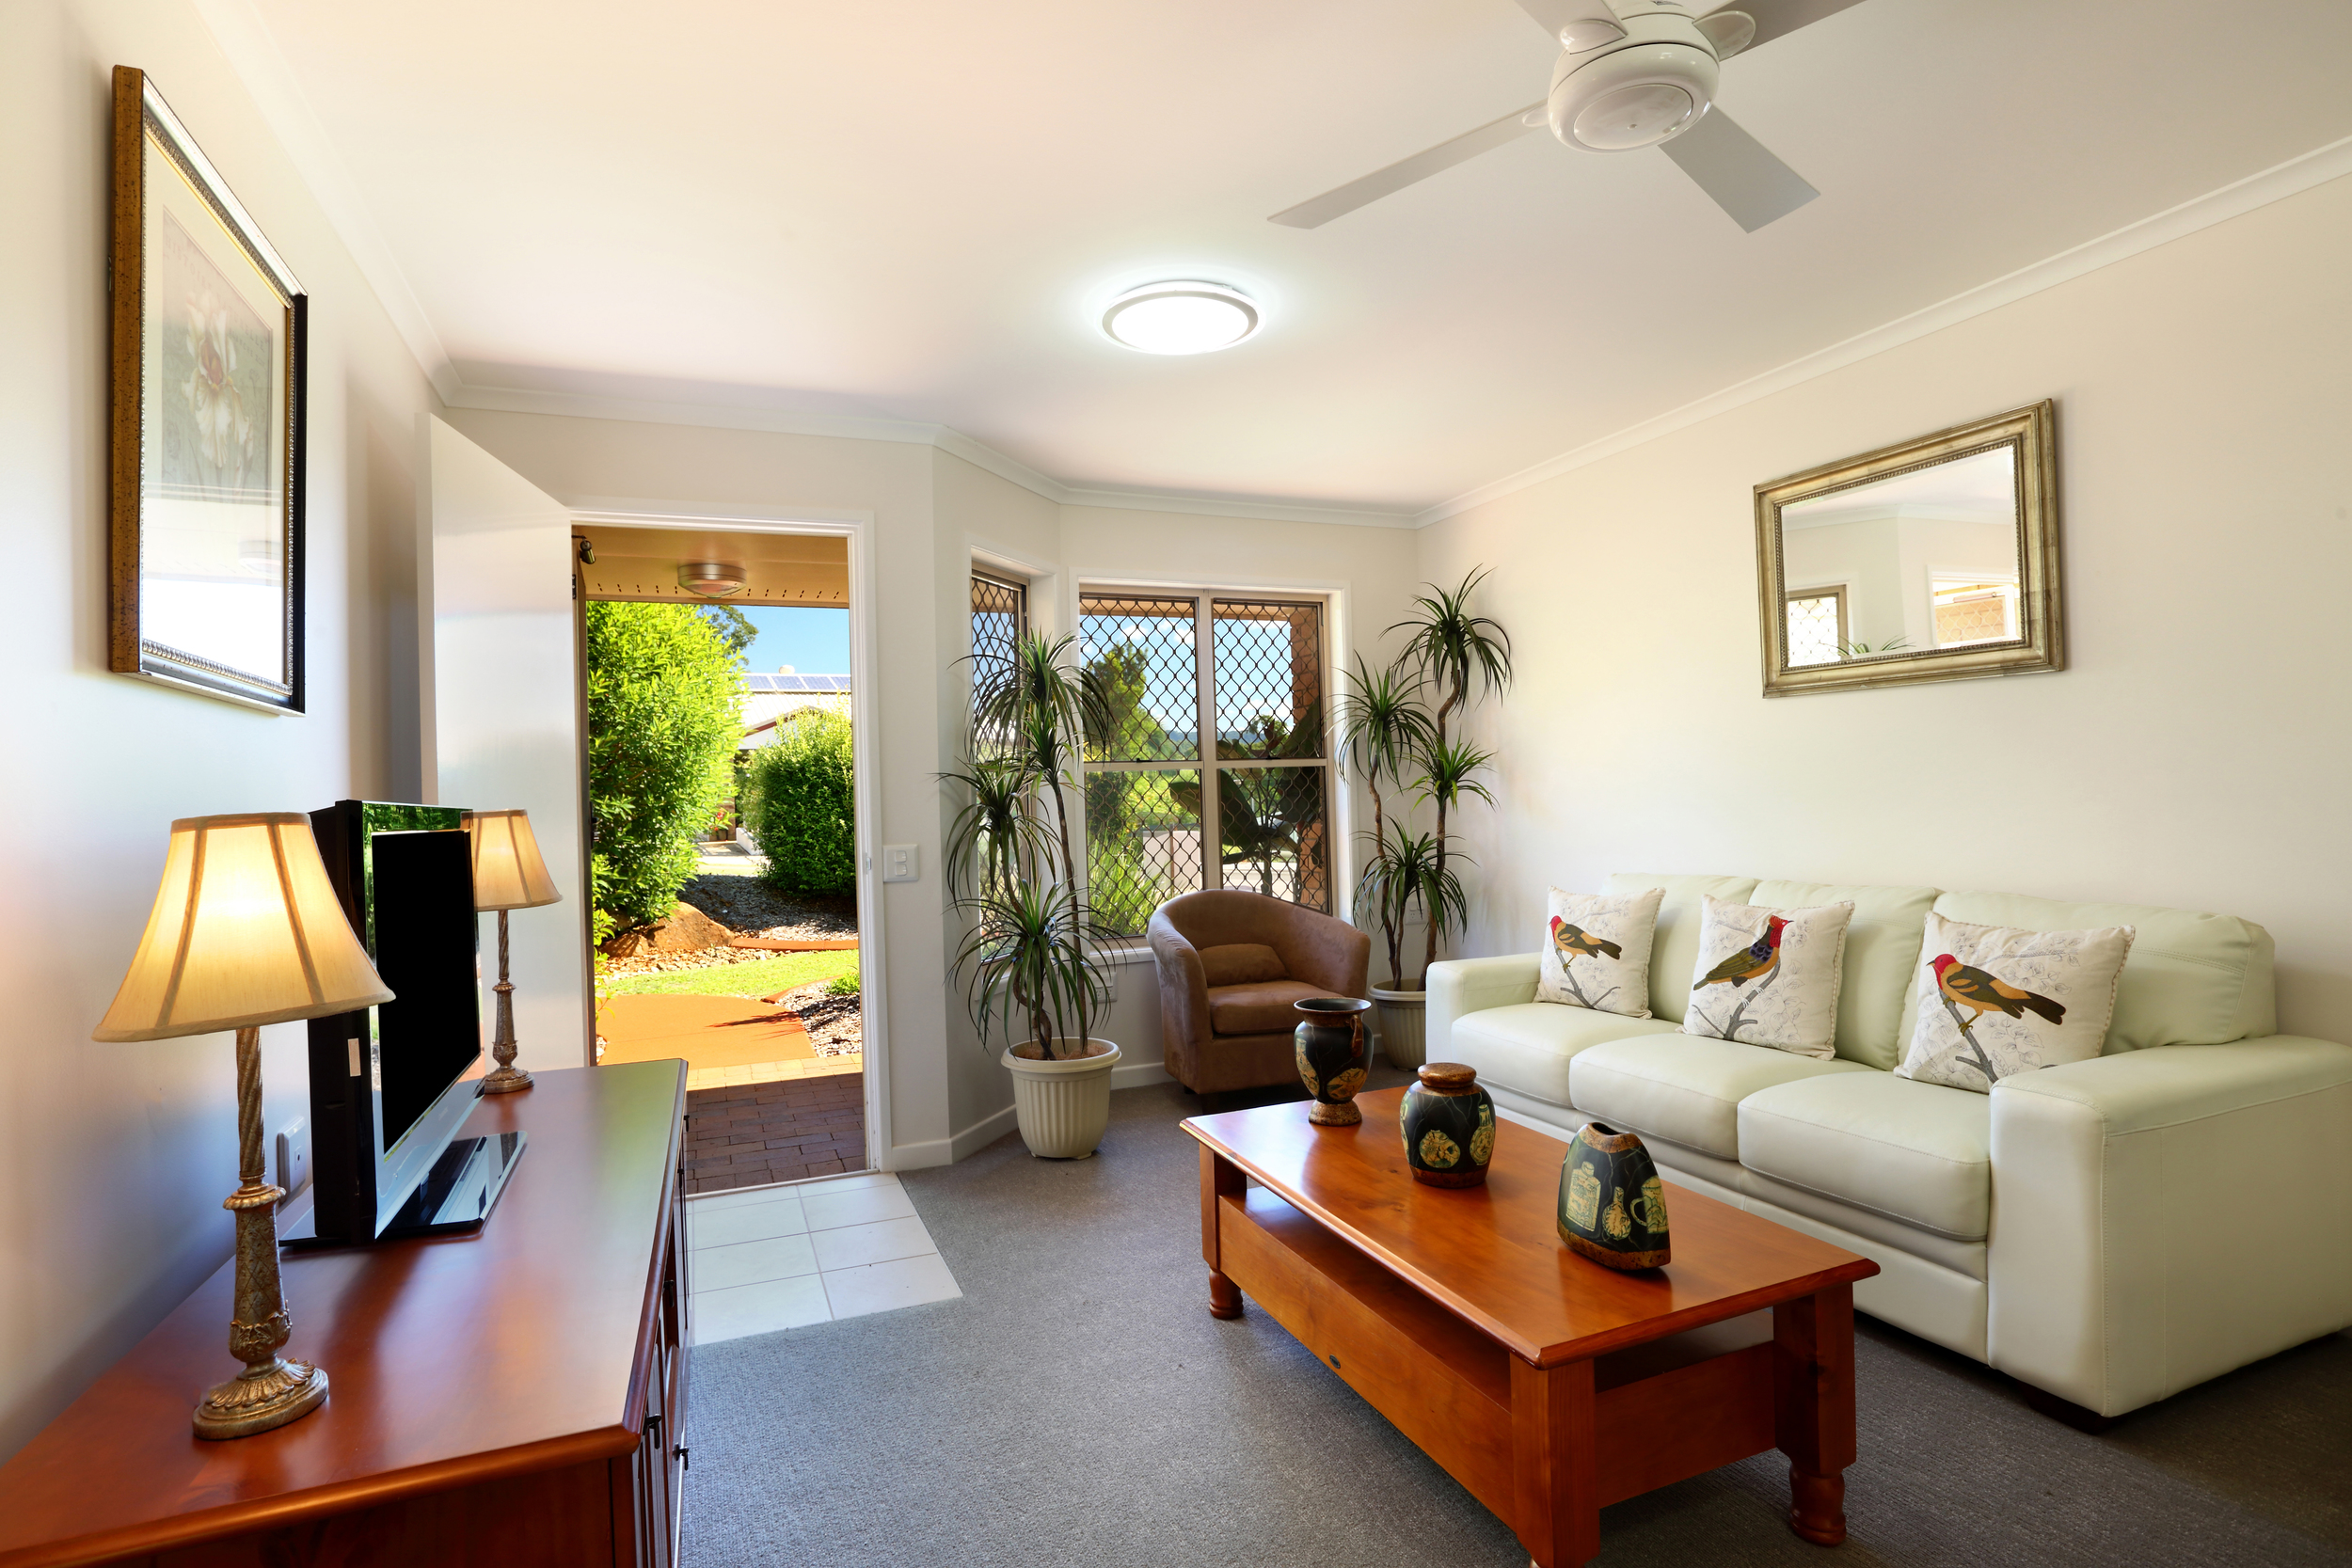 Sundale-retirement-communities-palmwoods3.JPG